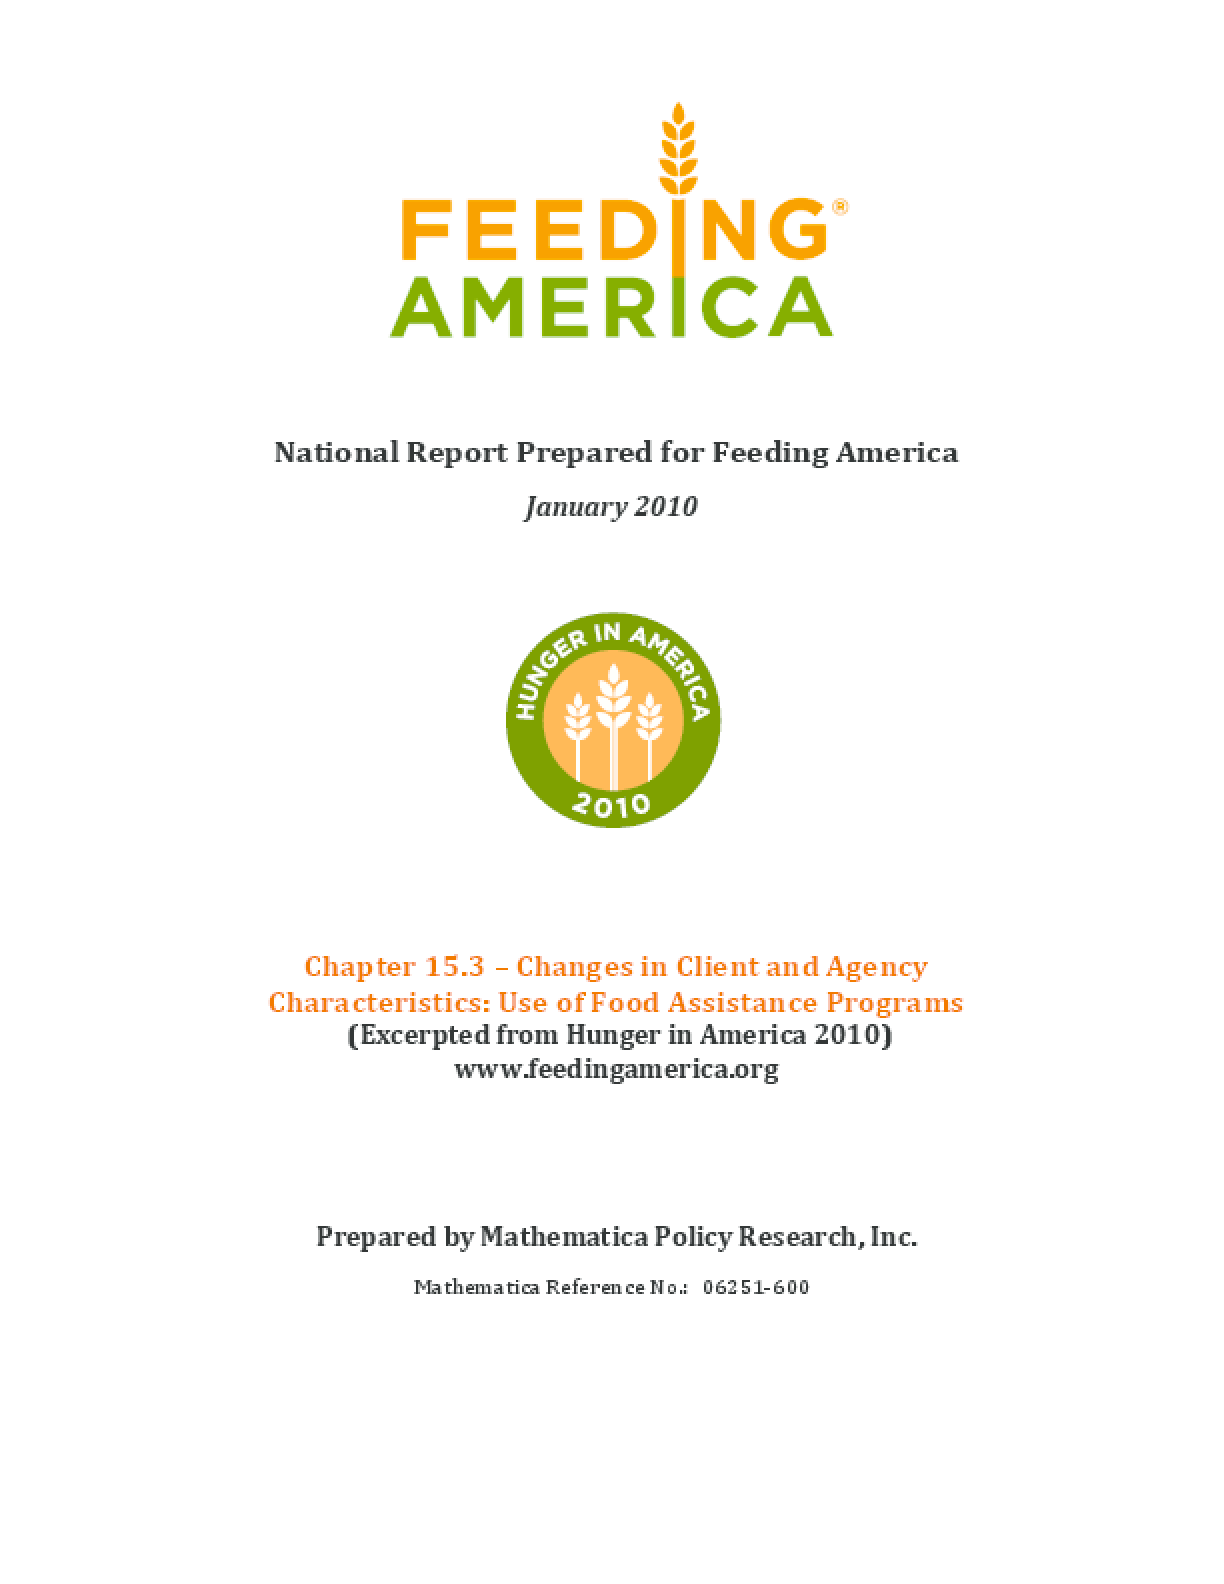 Changes in Feeding America Client and Agency Characteristics: Use of Food Assistance Programs